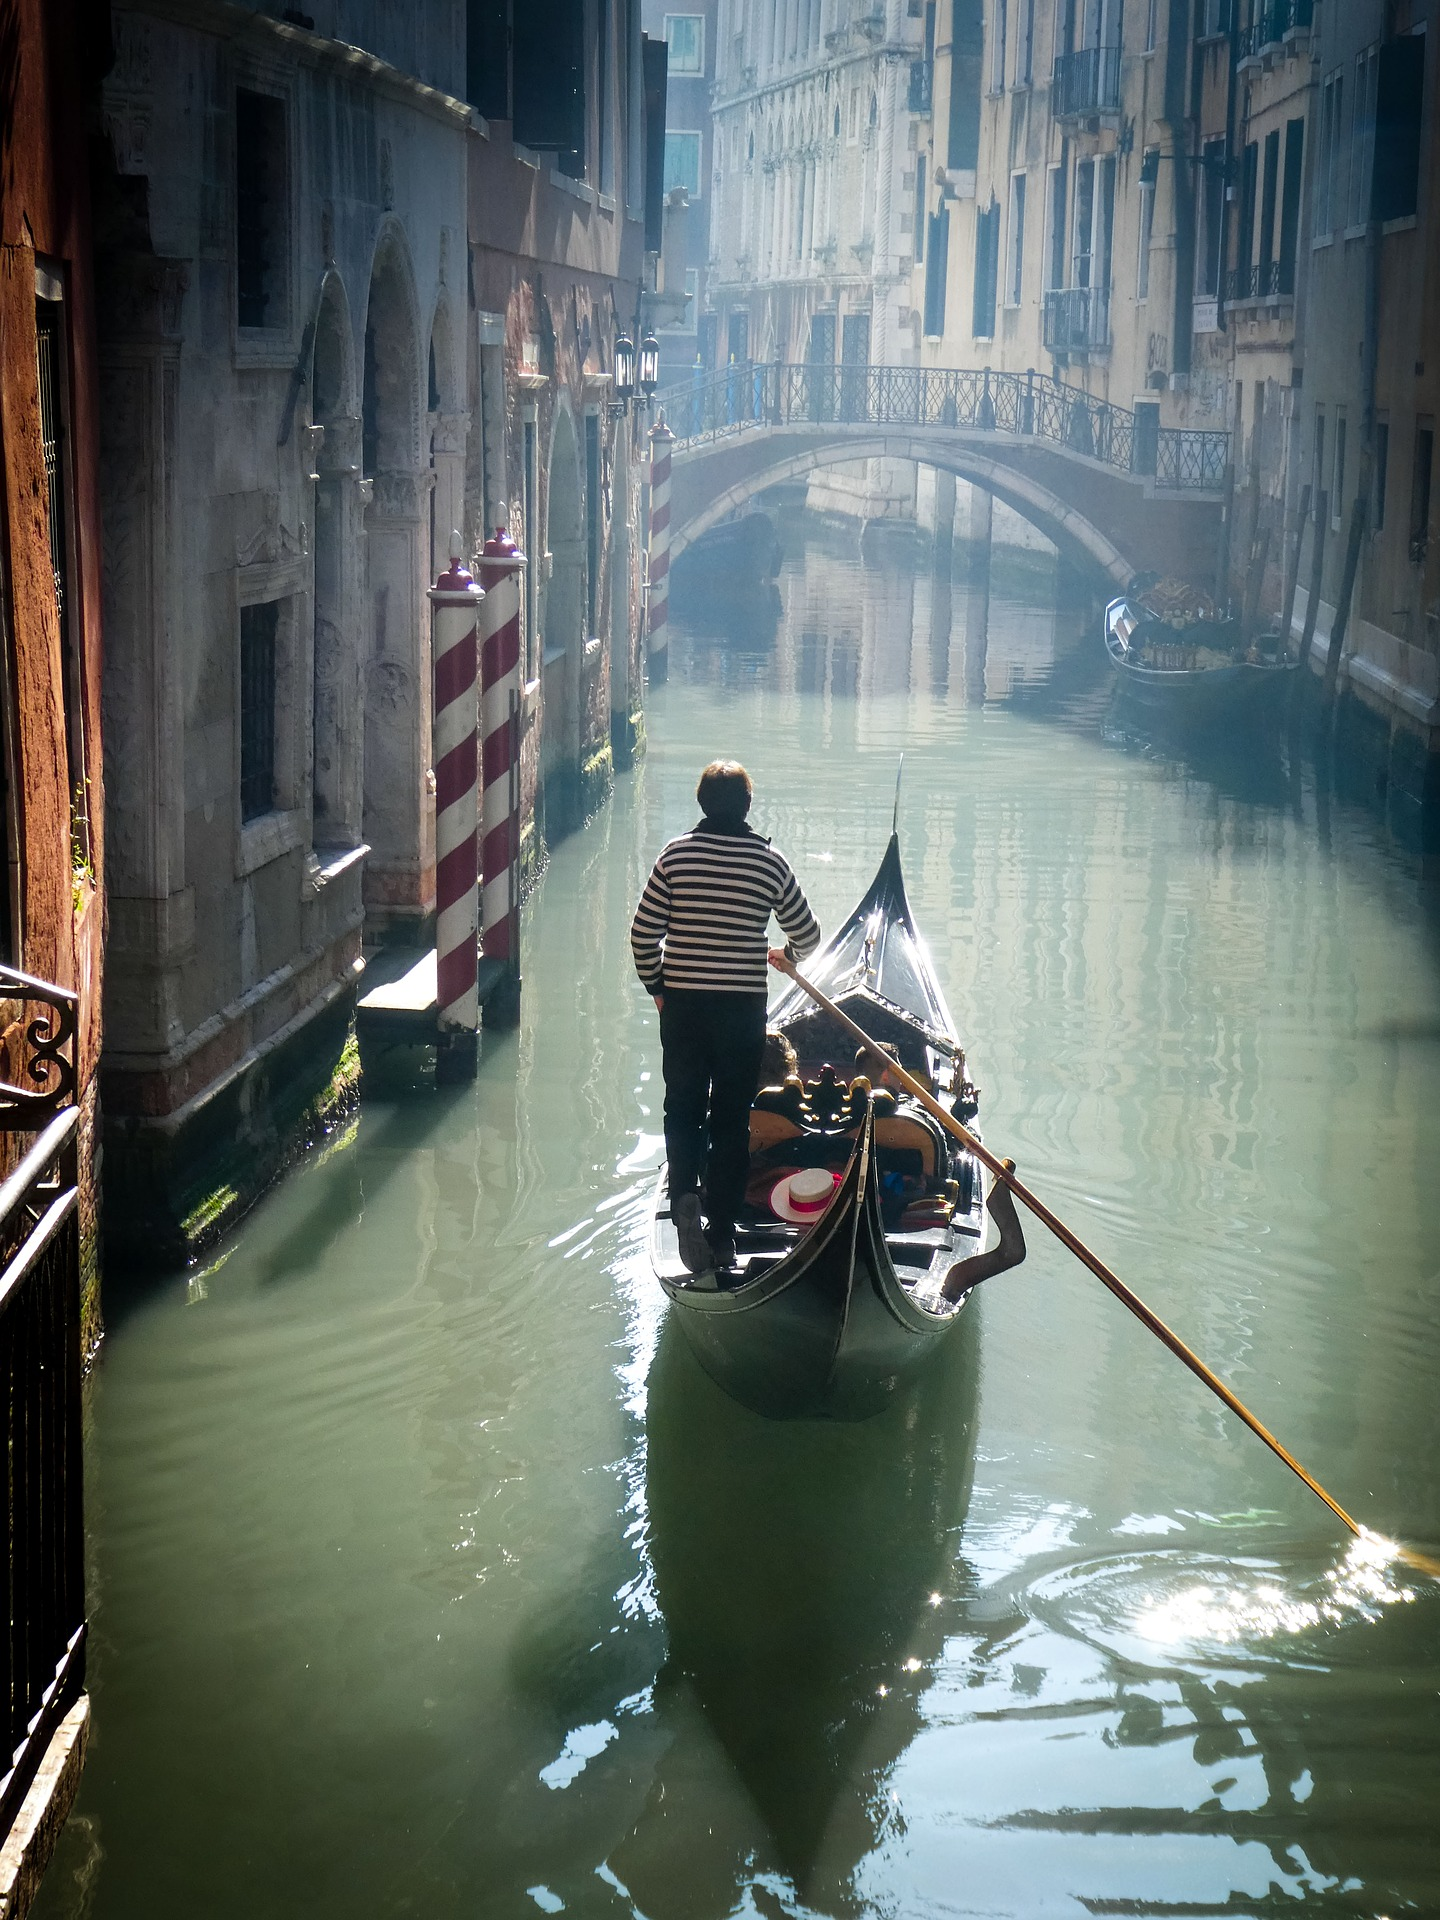 A gondola ride along narrow alleyways